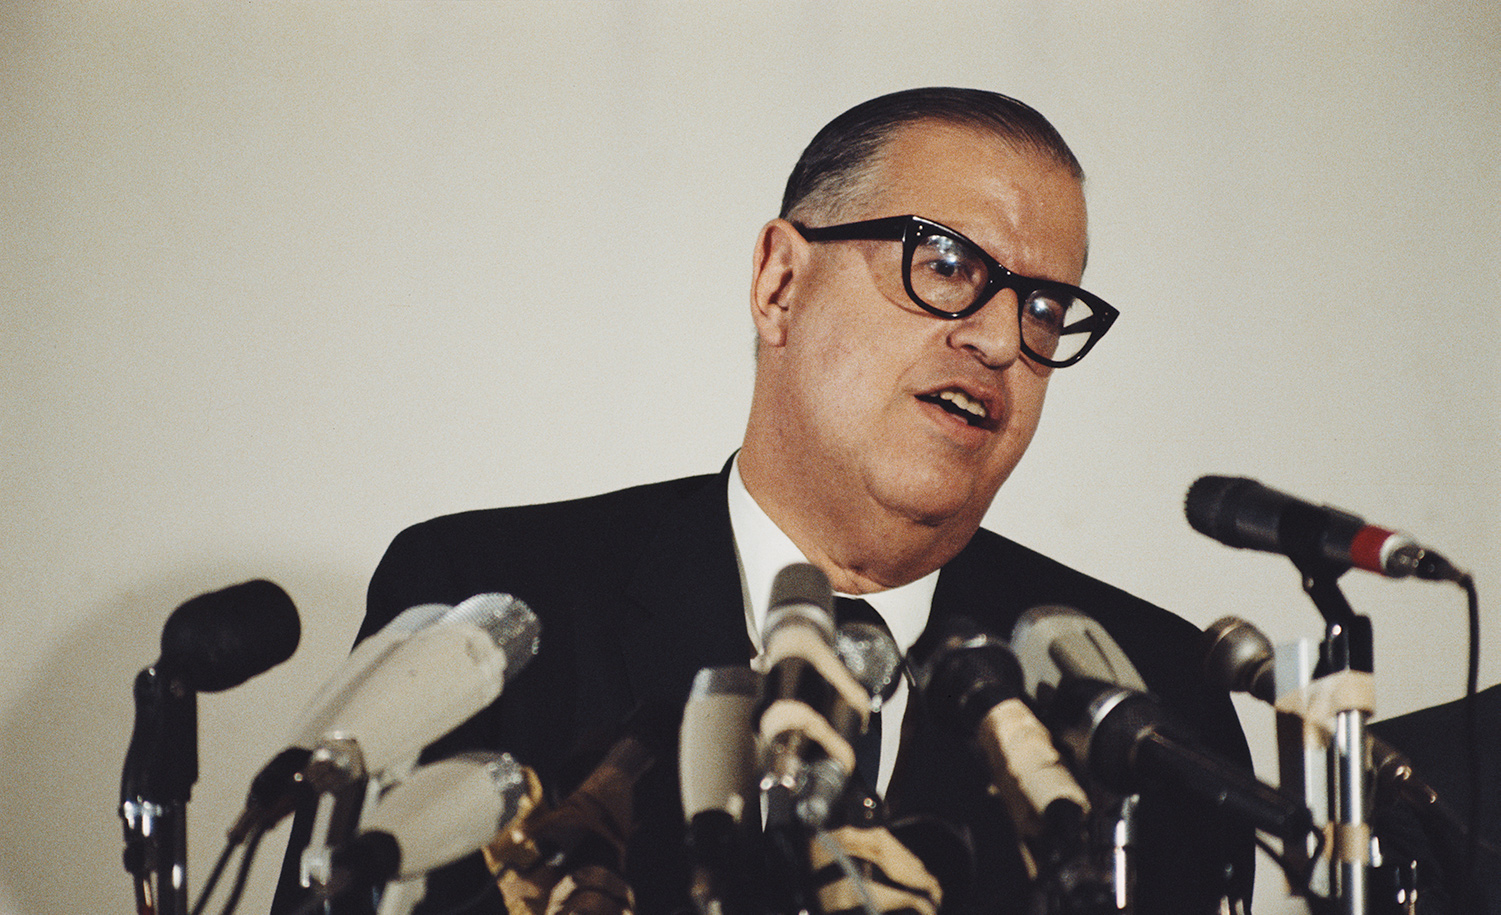 The Israeli diplomat and politician Abba Eban at a press conference in Tel Aviv in May 1970. Rolls Press/Popperfoto/Getty Images.